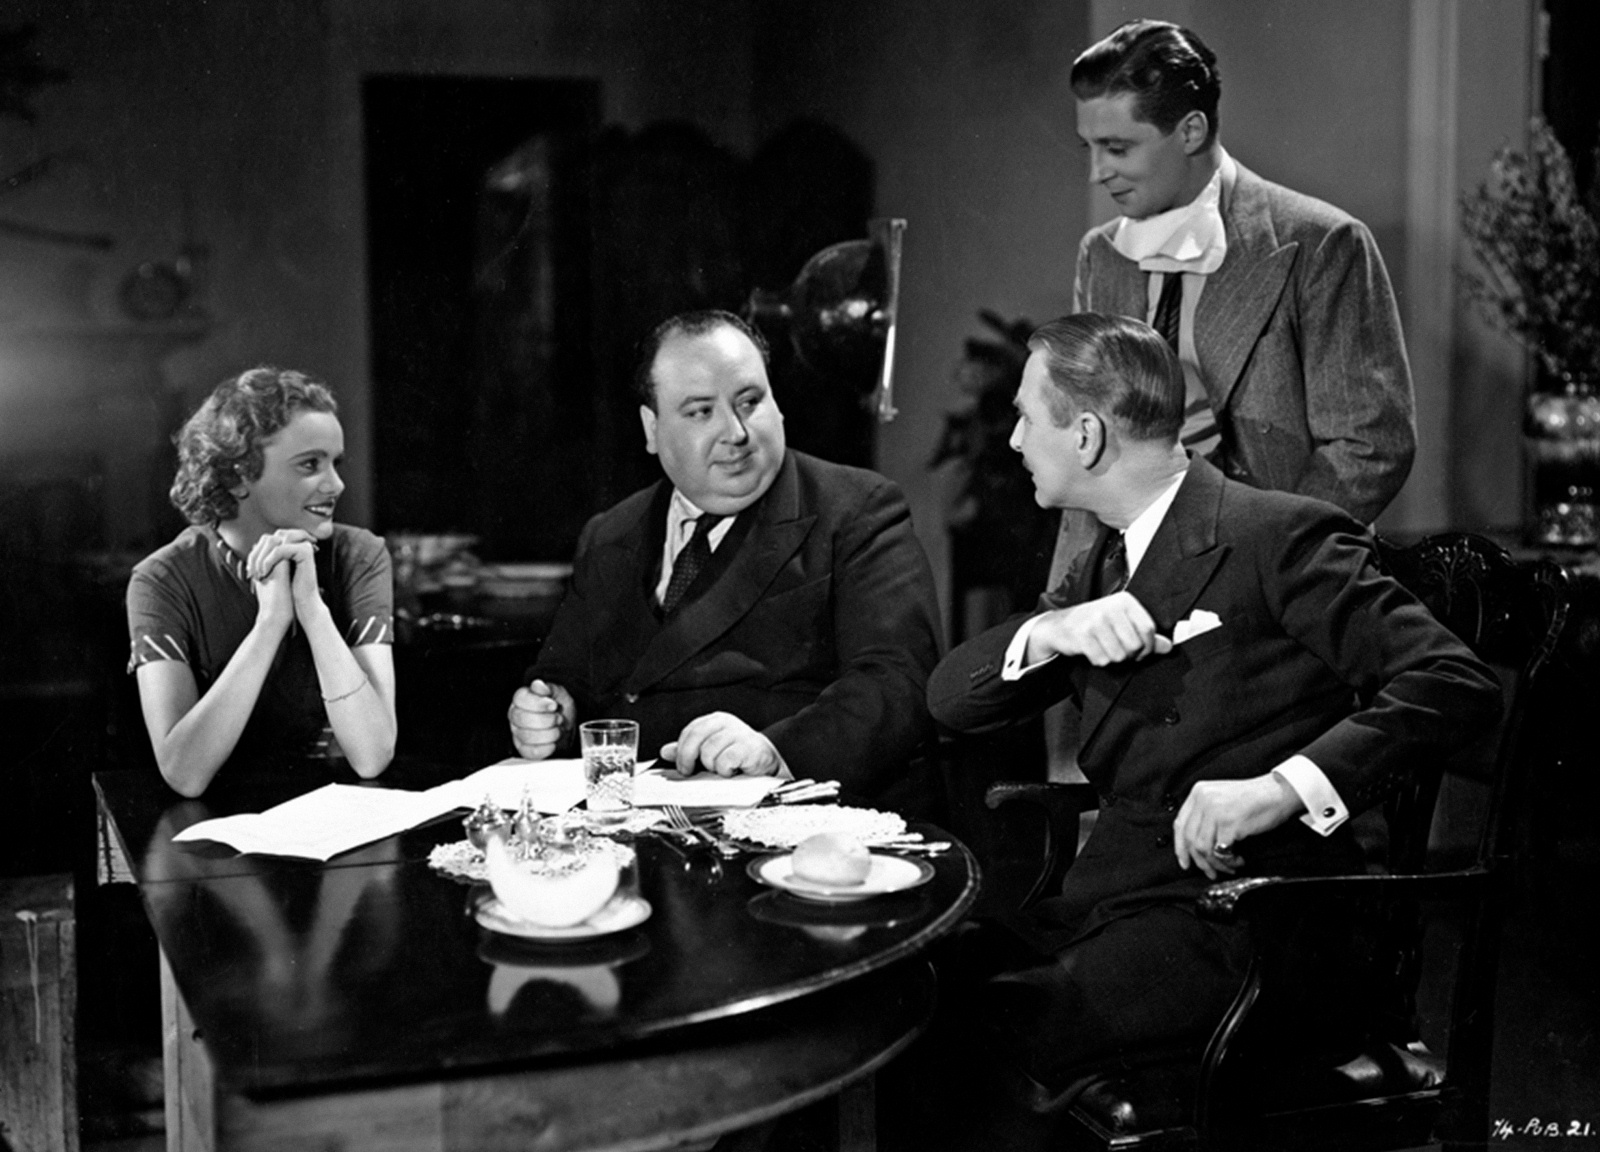 Nova Pilbeam, Alfred Hitchcock, Percy Marmont and Derrick De Marney (standing) on the set of Young and Innocent (1937)